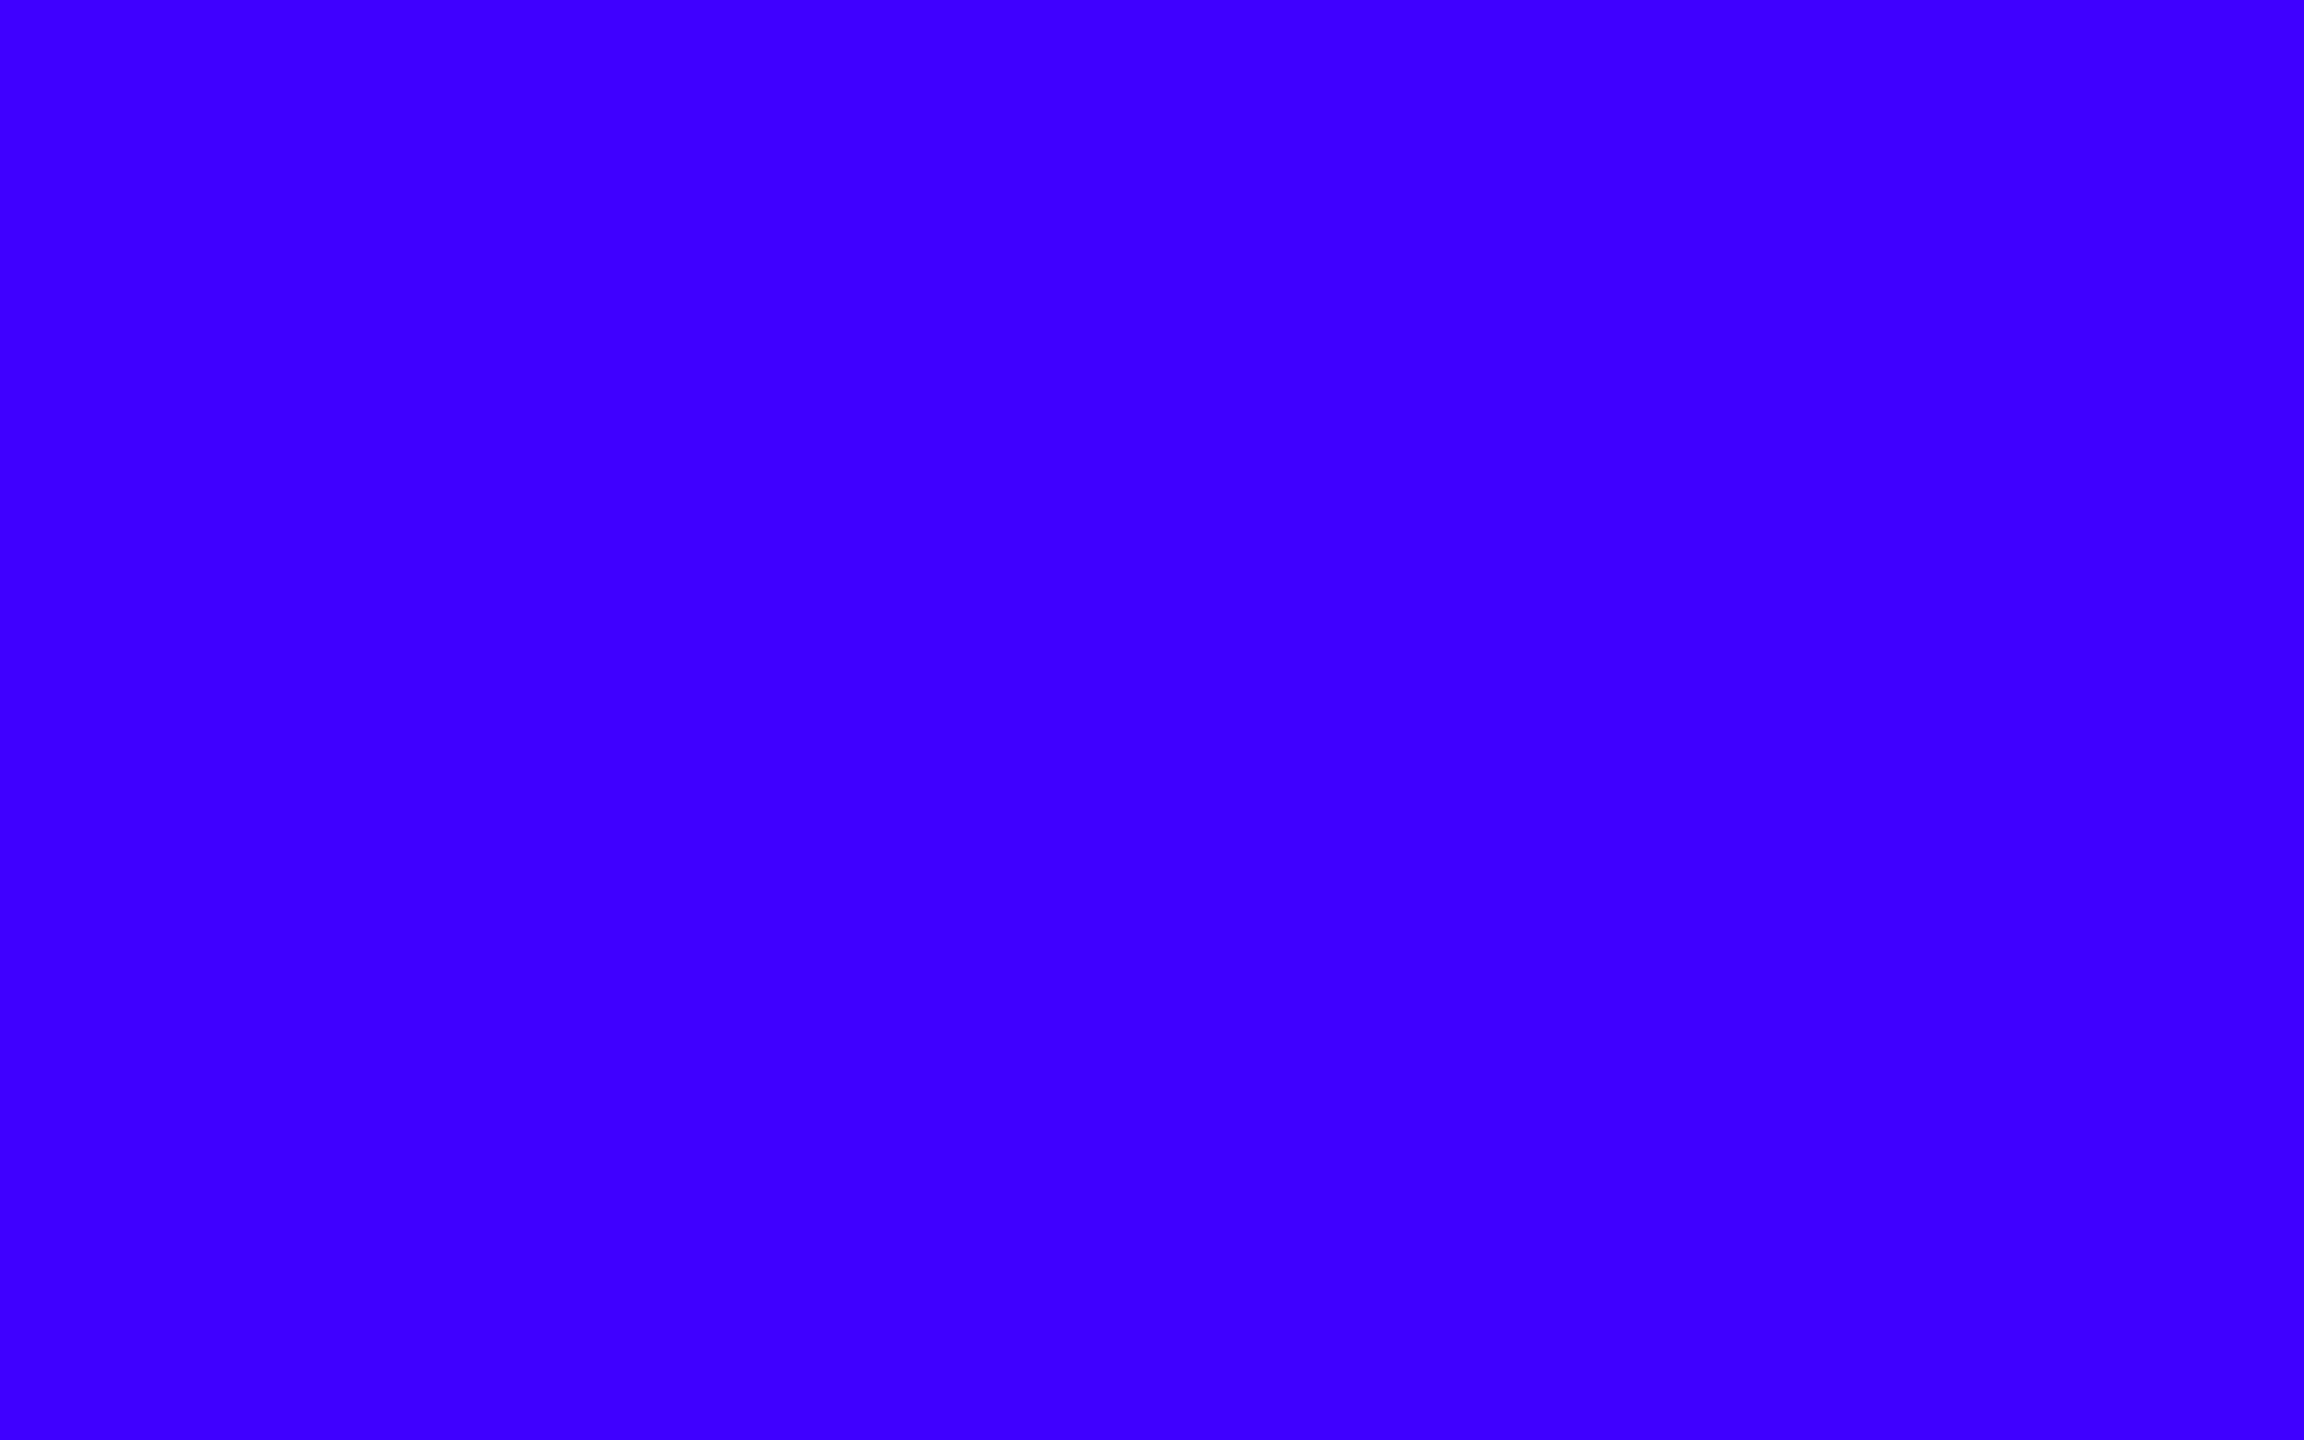 2304x1440 Electric Ultramarine Solid Color Background